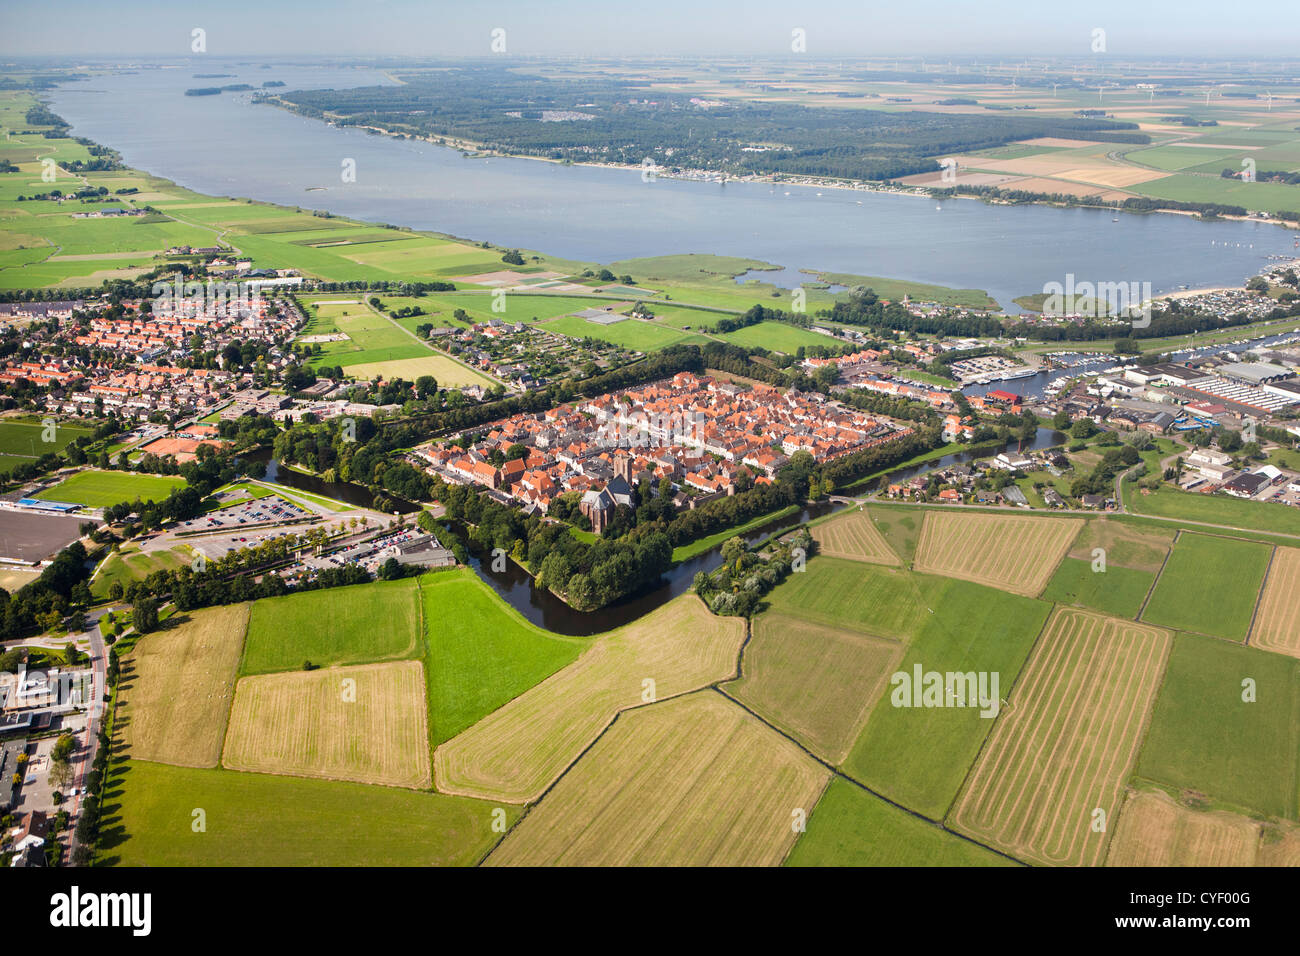 The Netherlands, Elburg. The fortified center of the city. Aerial. - Stock Image